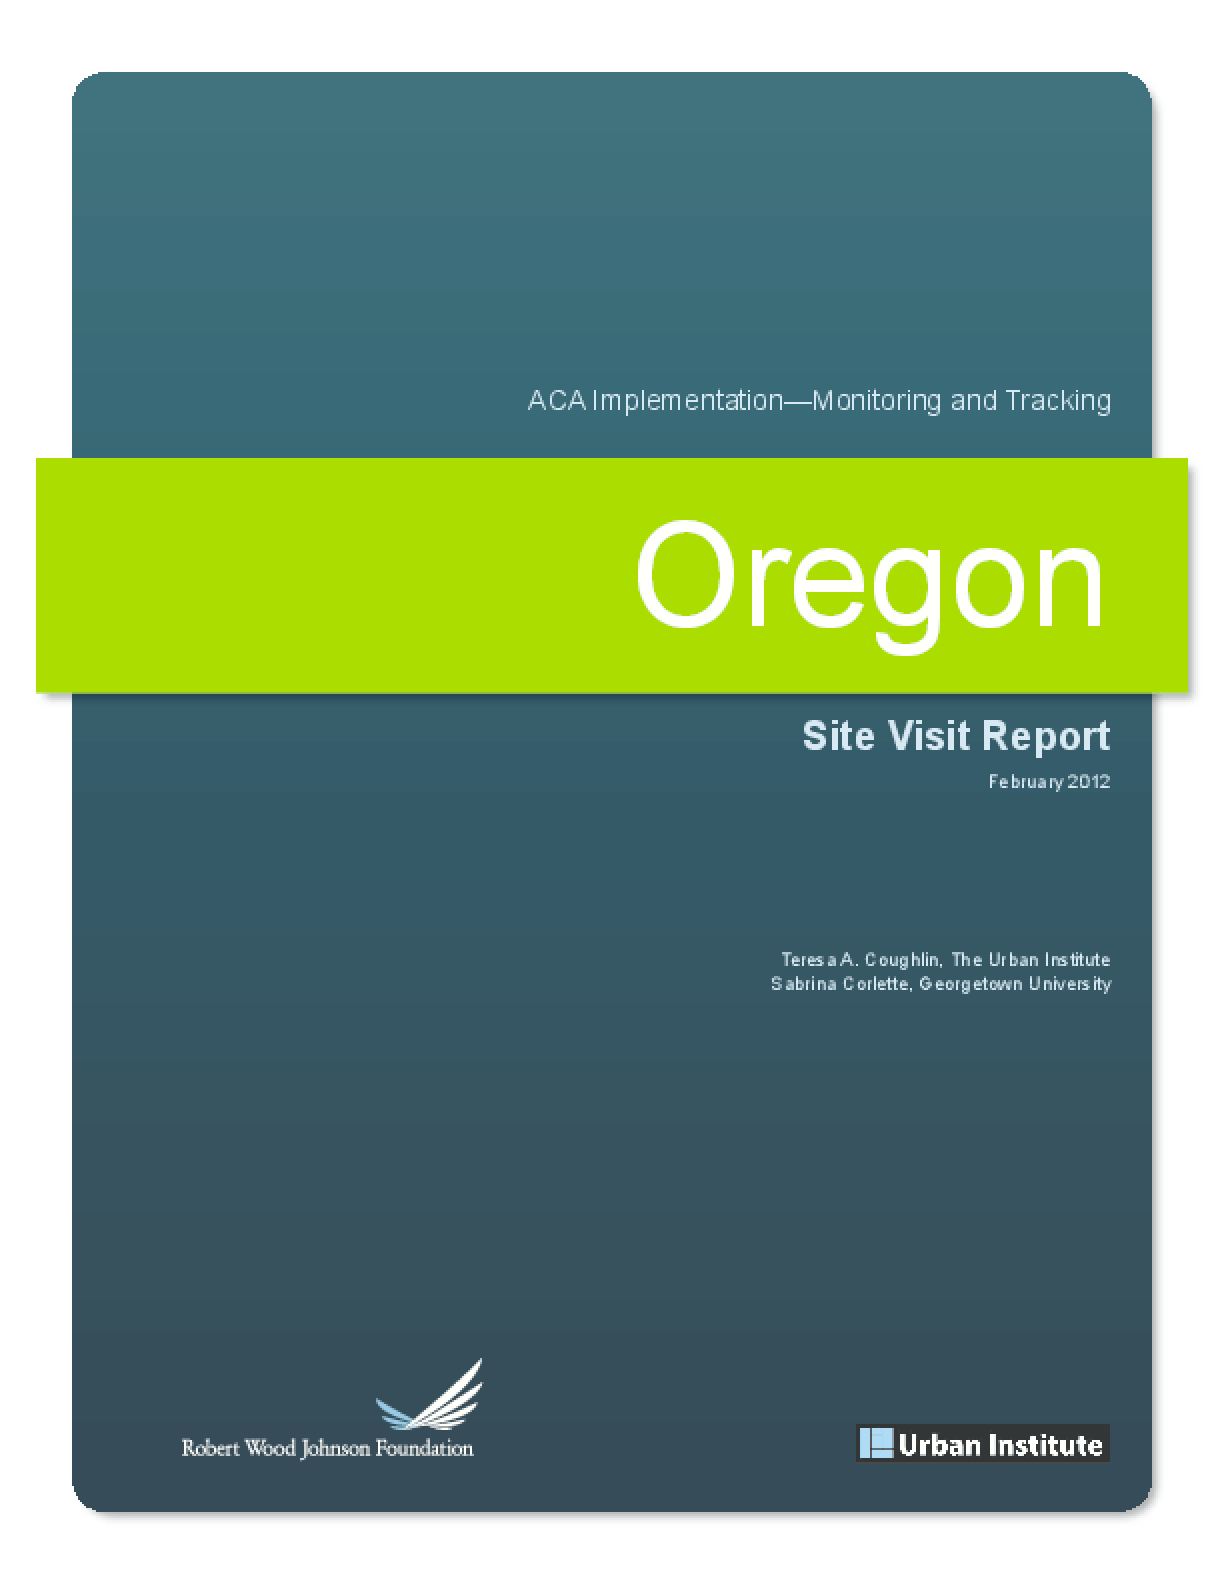 ACA Implementation Monitoring and Tracking: Oregon Site Visit Report